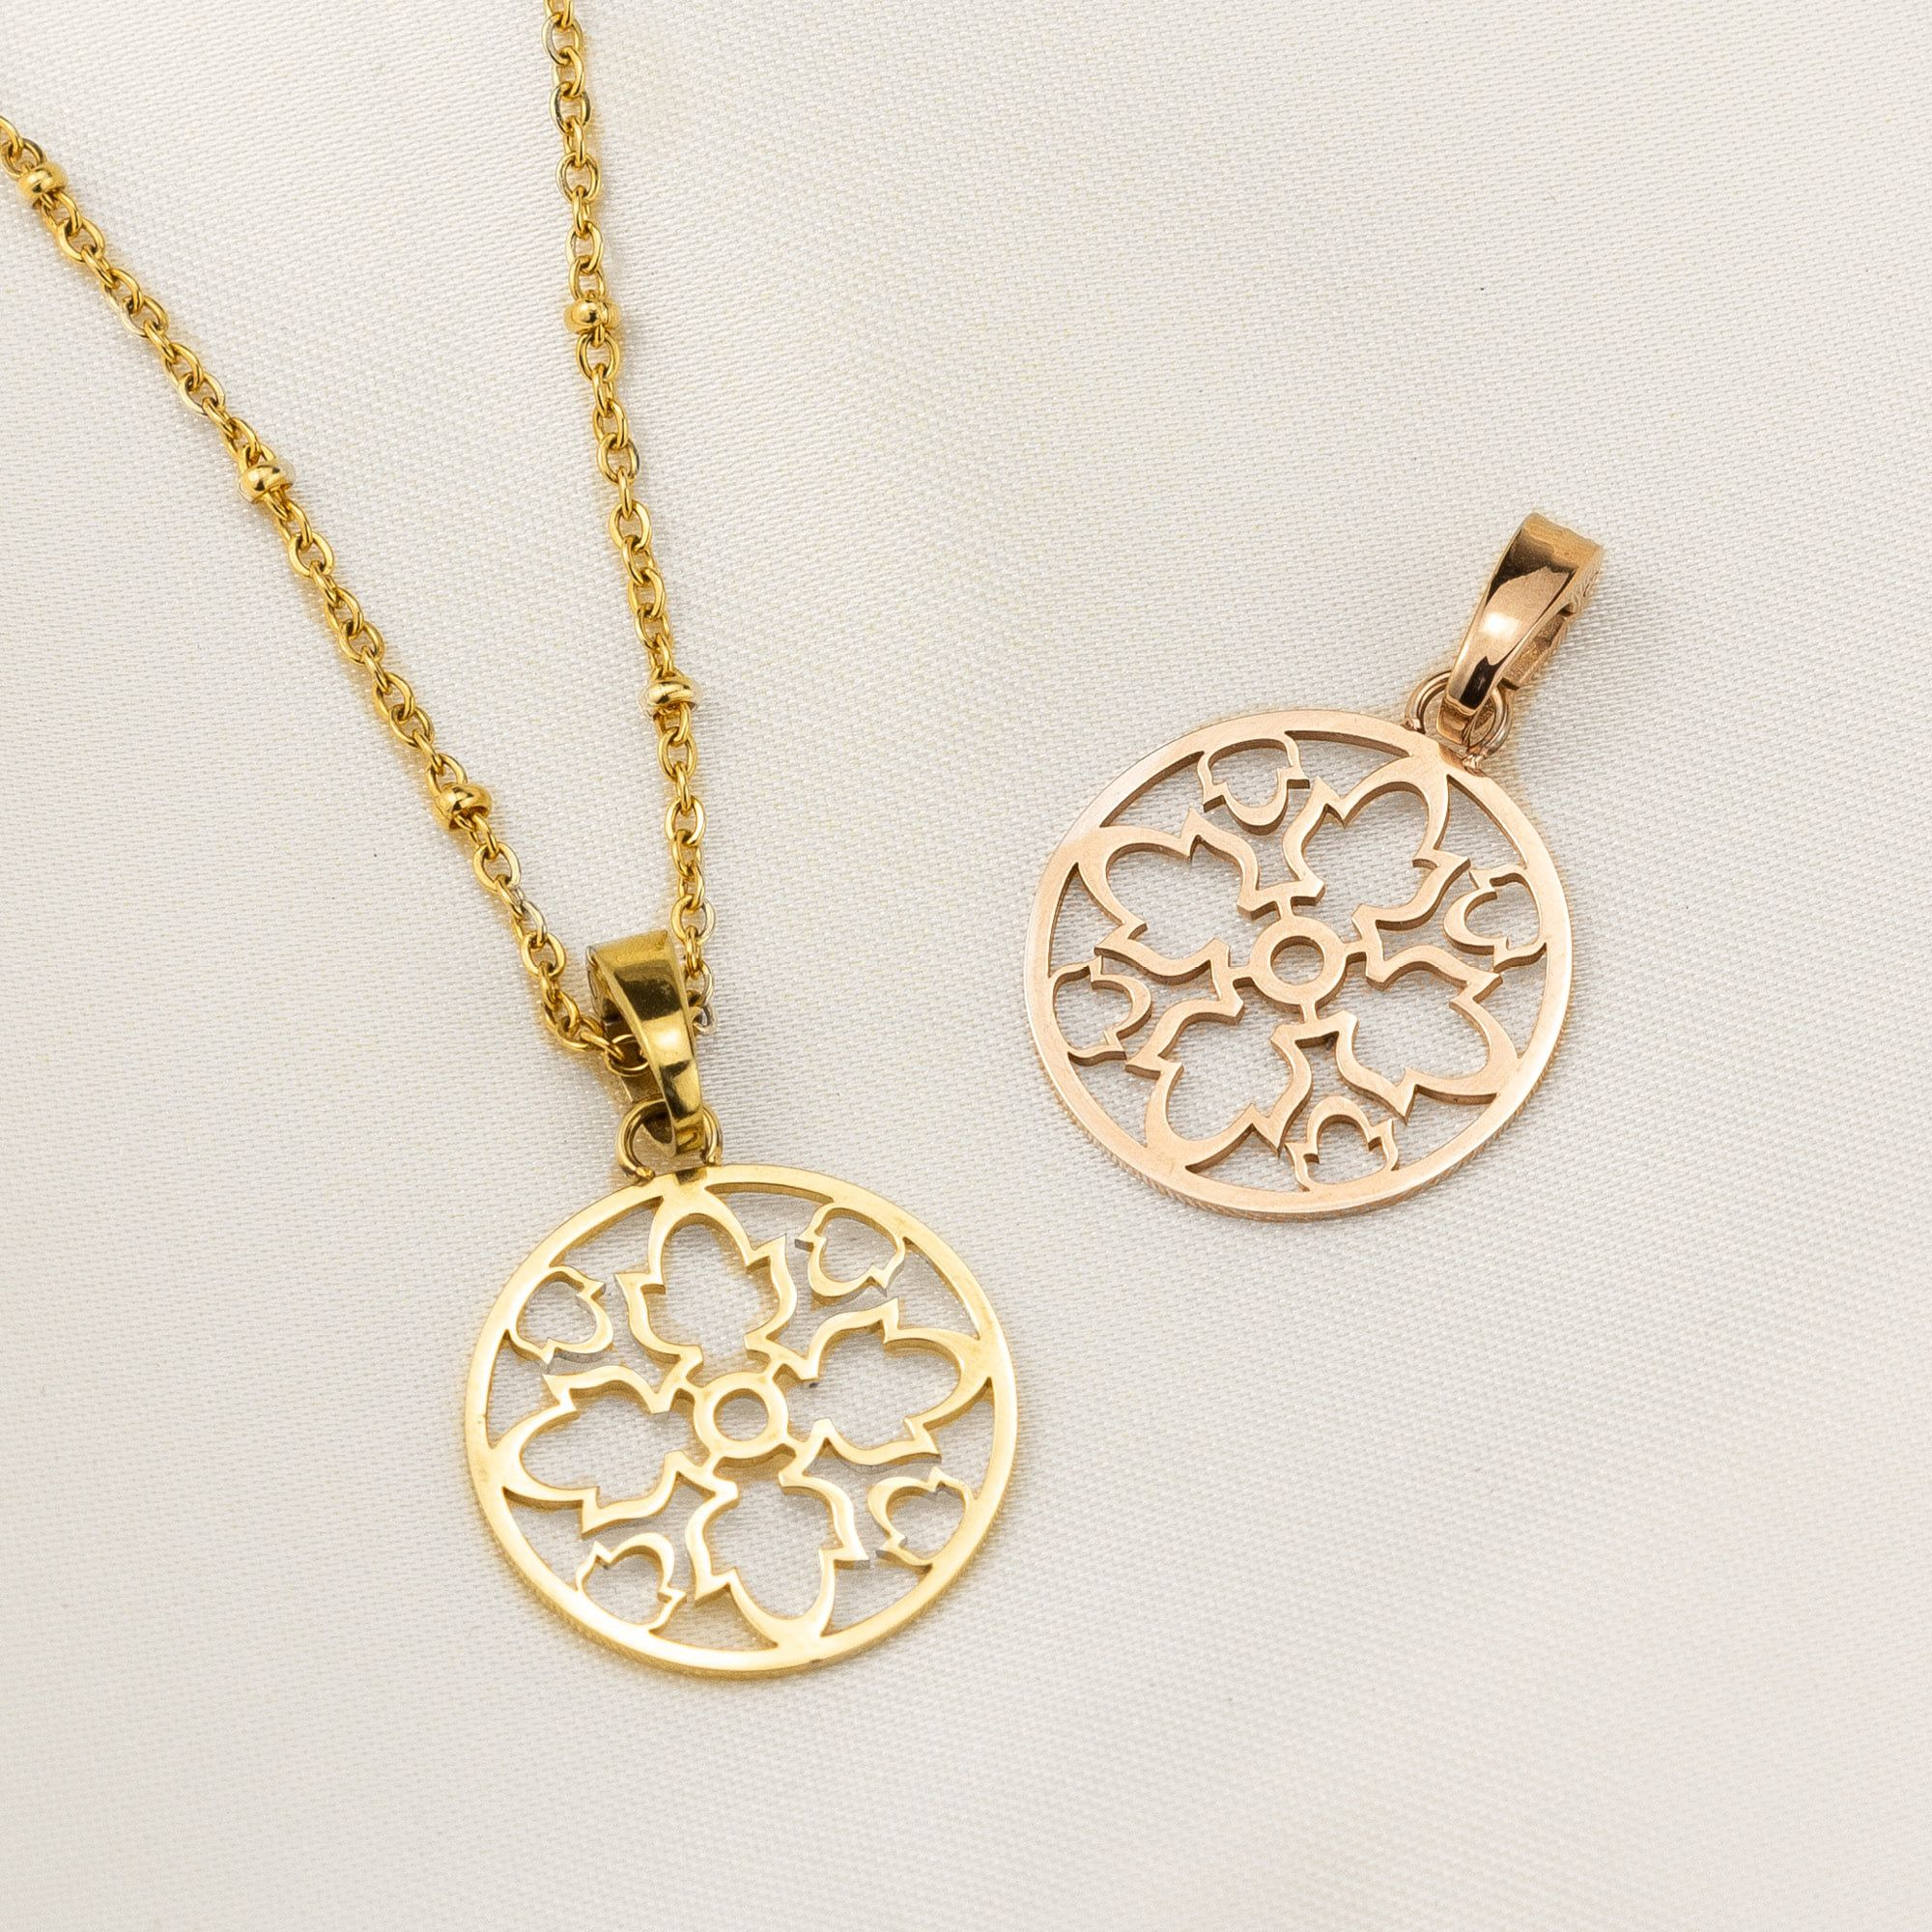 Our New Friendship Pendants Are Inspired By The Alstroemeria Flower Friendship Flower Hollow Maduma Is A Symbol In 2020 Heritage Jewellery Jewelry Inspiration Jewelry